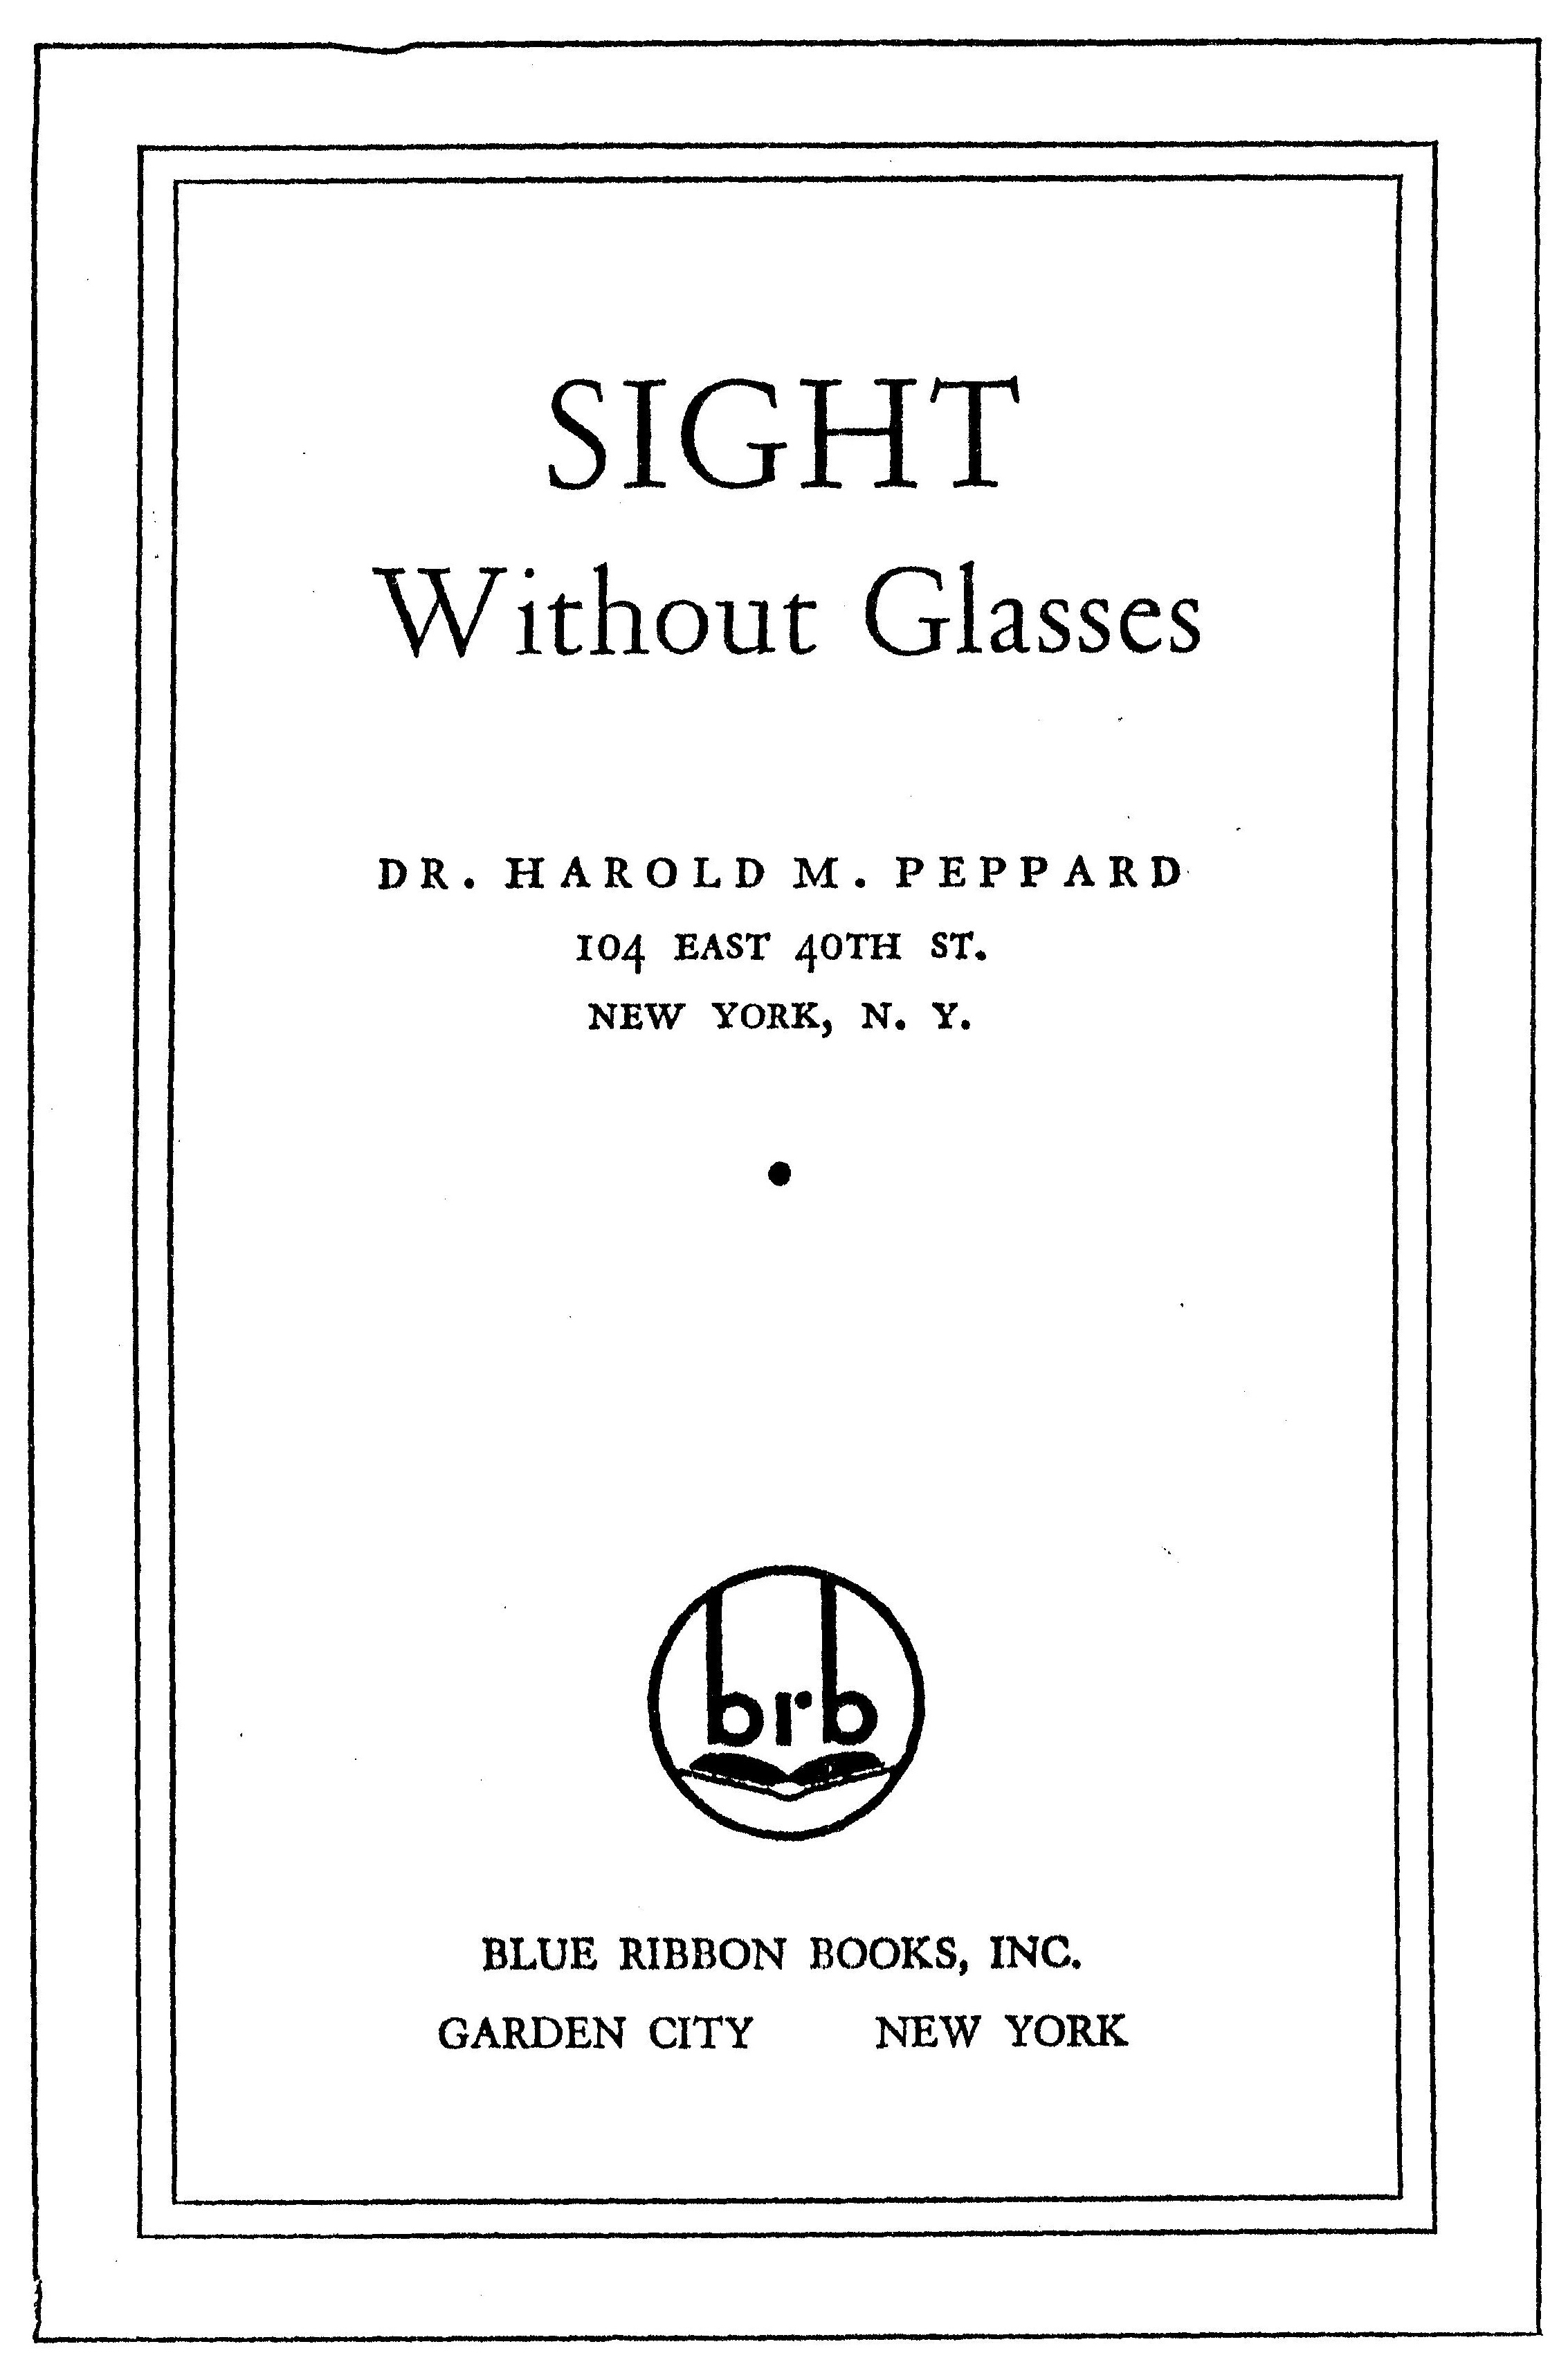 Harold Peppard's book; Sight Without Glasses. Optometrist Trained by Dr. Bates